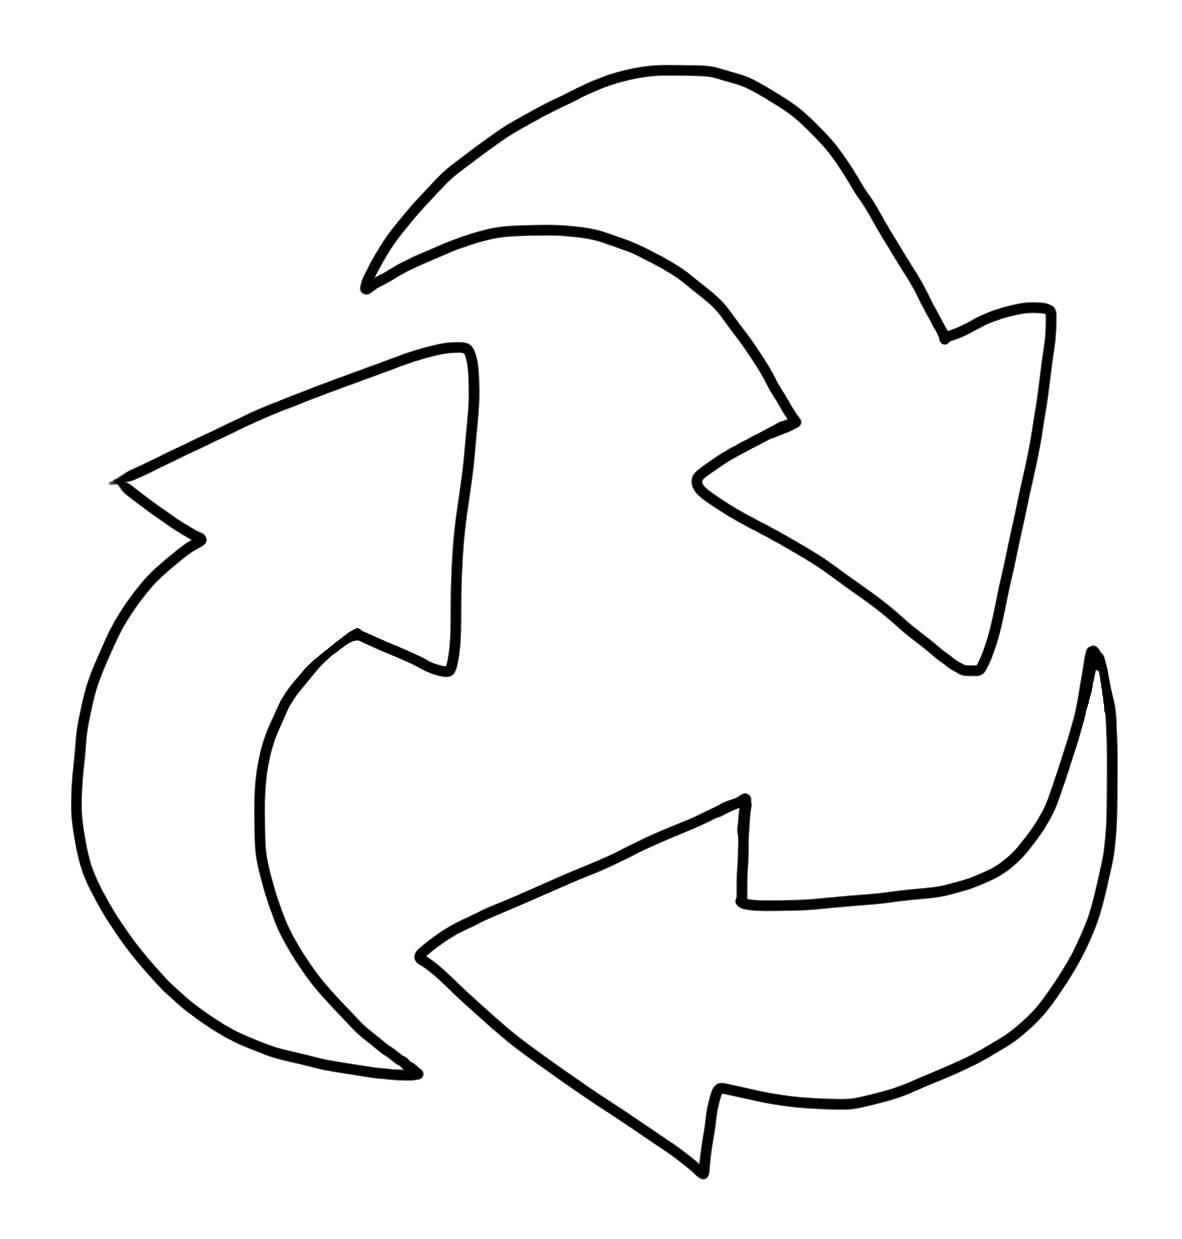 Free Recycling Symbol Printable, Download Free Clip Art, Free Clip